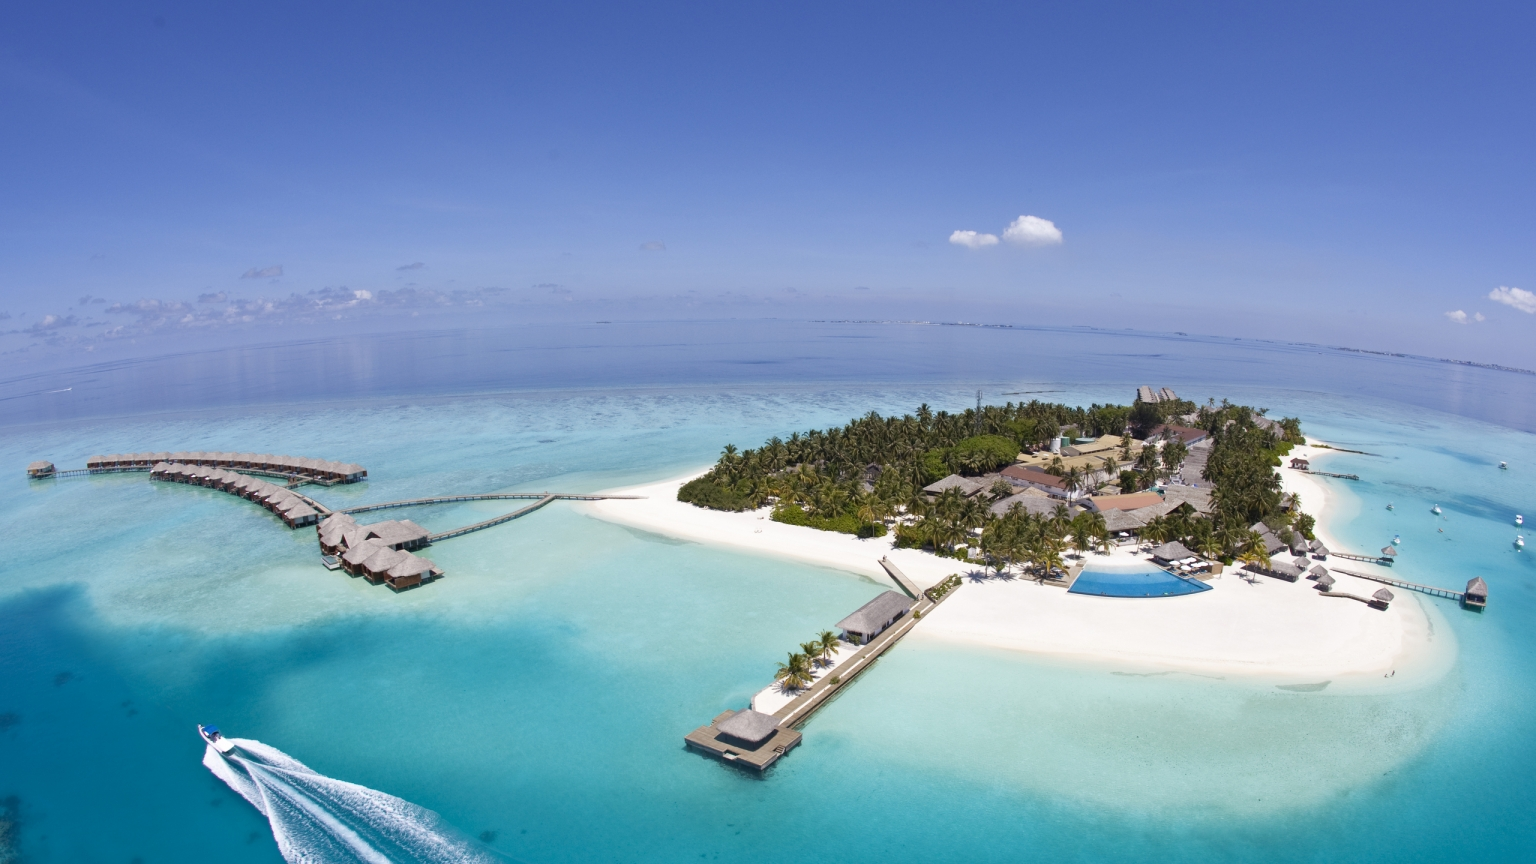 Maldives Island for 1536 x 864 HDTV resolution